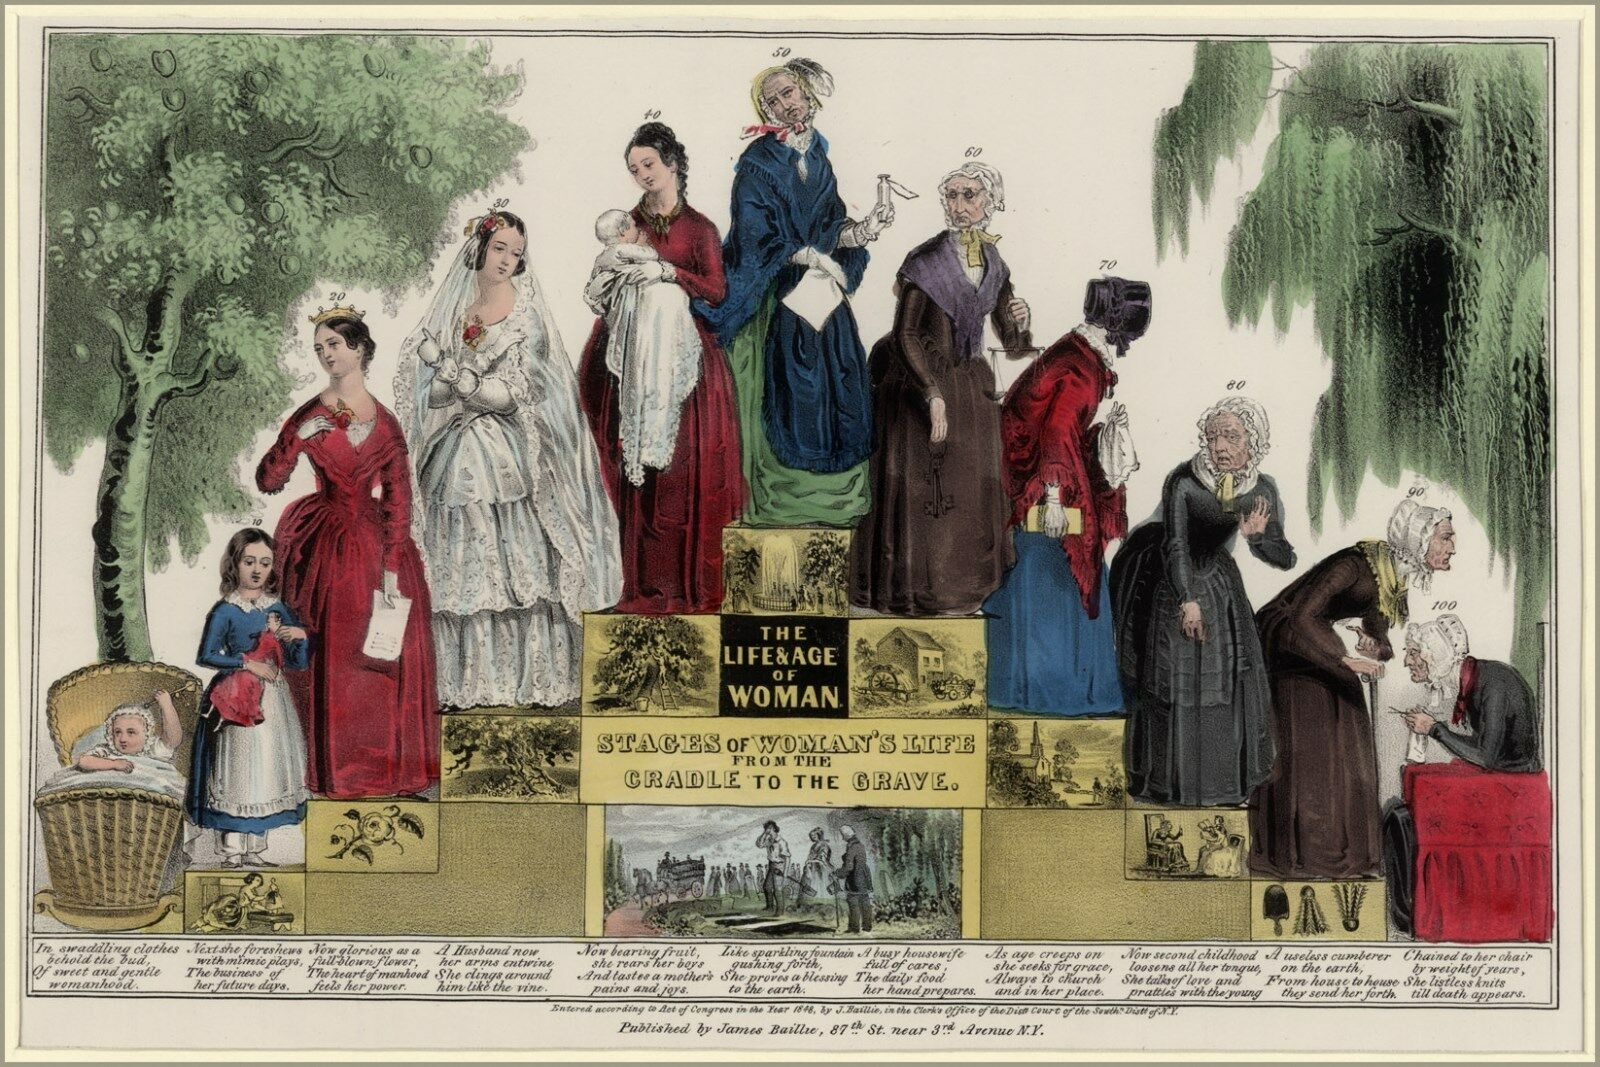 Poster, Many Größes; The Life And Age Of Woman, Stages of Woman'S Life From The C